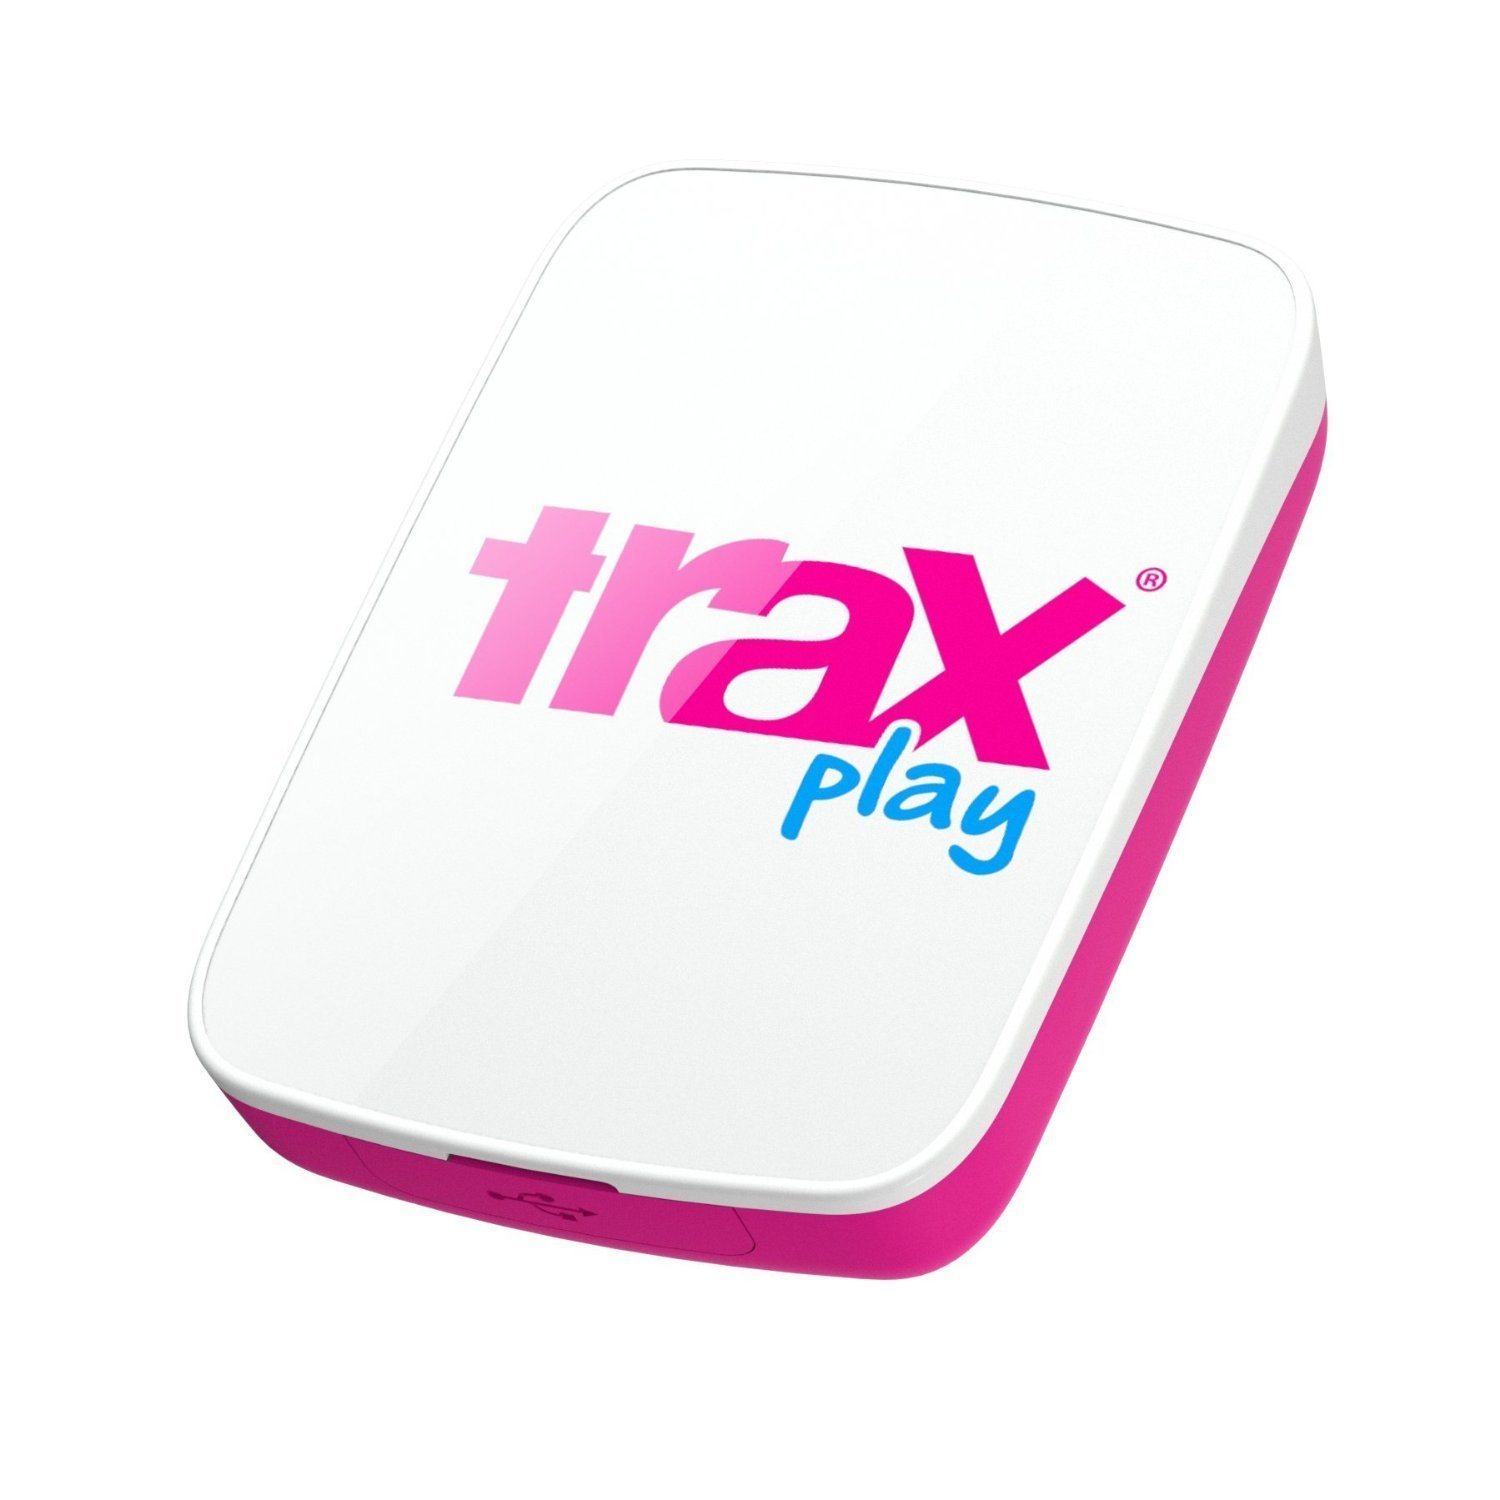 Trax Play Live GPS tracker for Children & Pets, New upgraded 2016 version - Pink